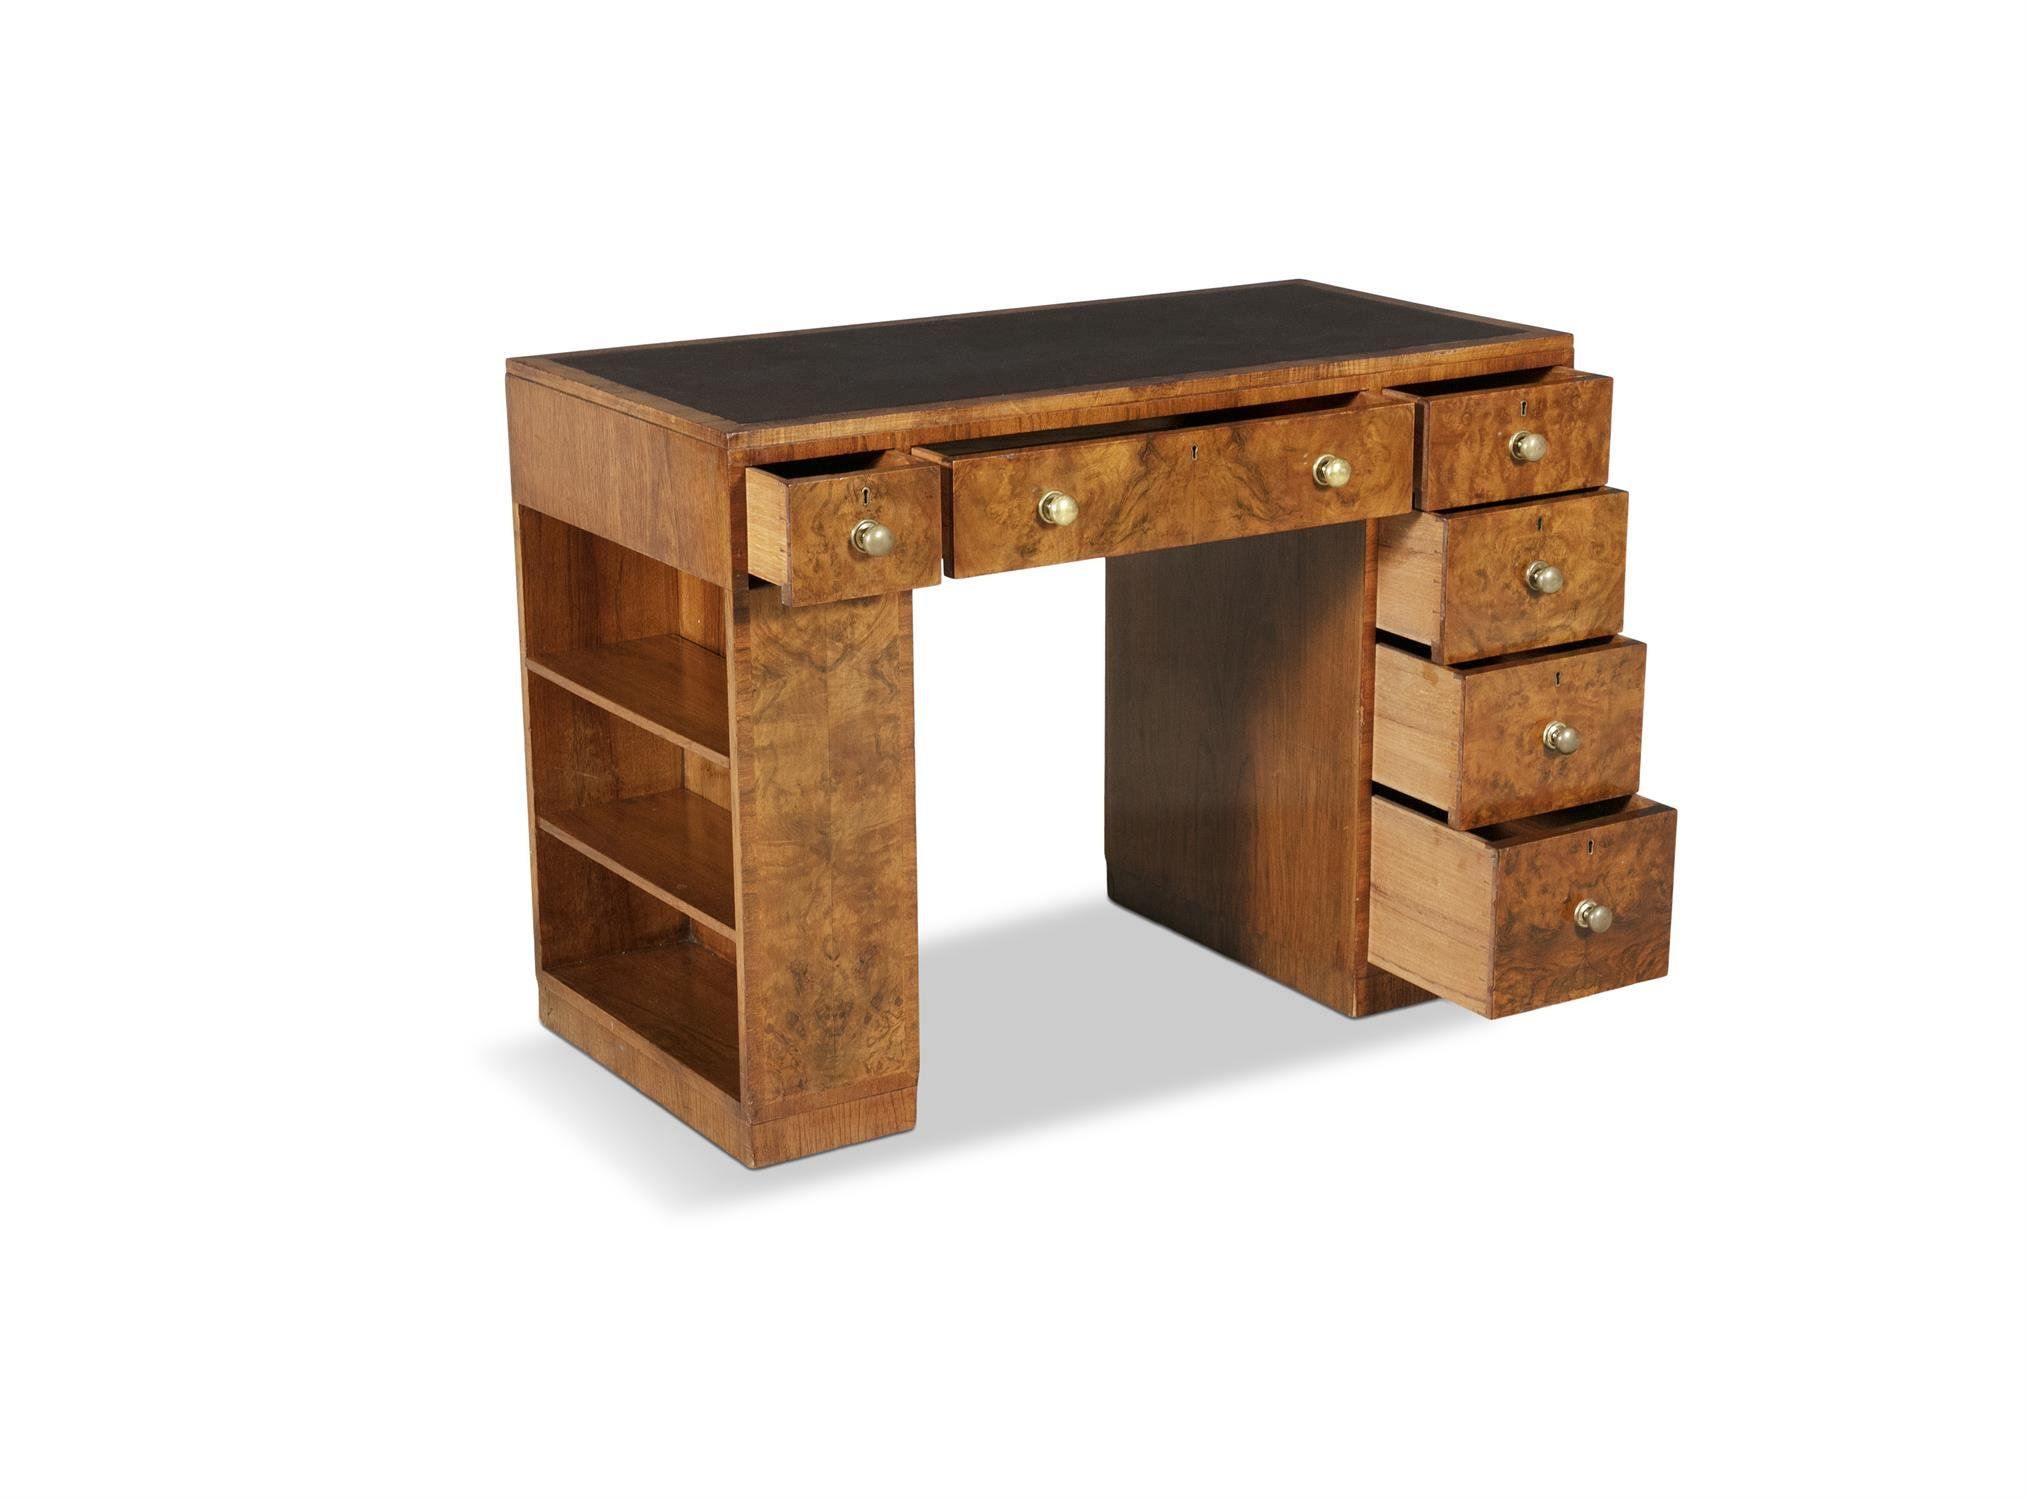 A MID 20TH-CENTURY WALNUT KNEEHOLE WRITING DESK, the rectangular top inset with brown leather - Image 3 of 3